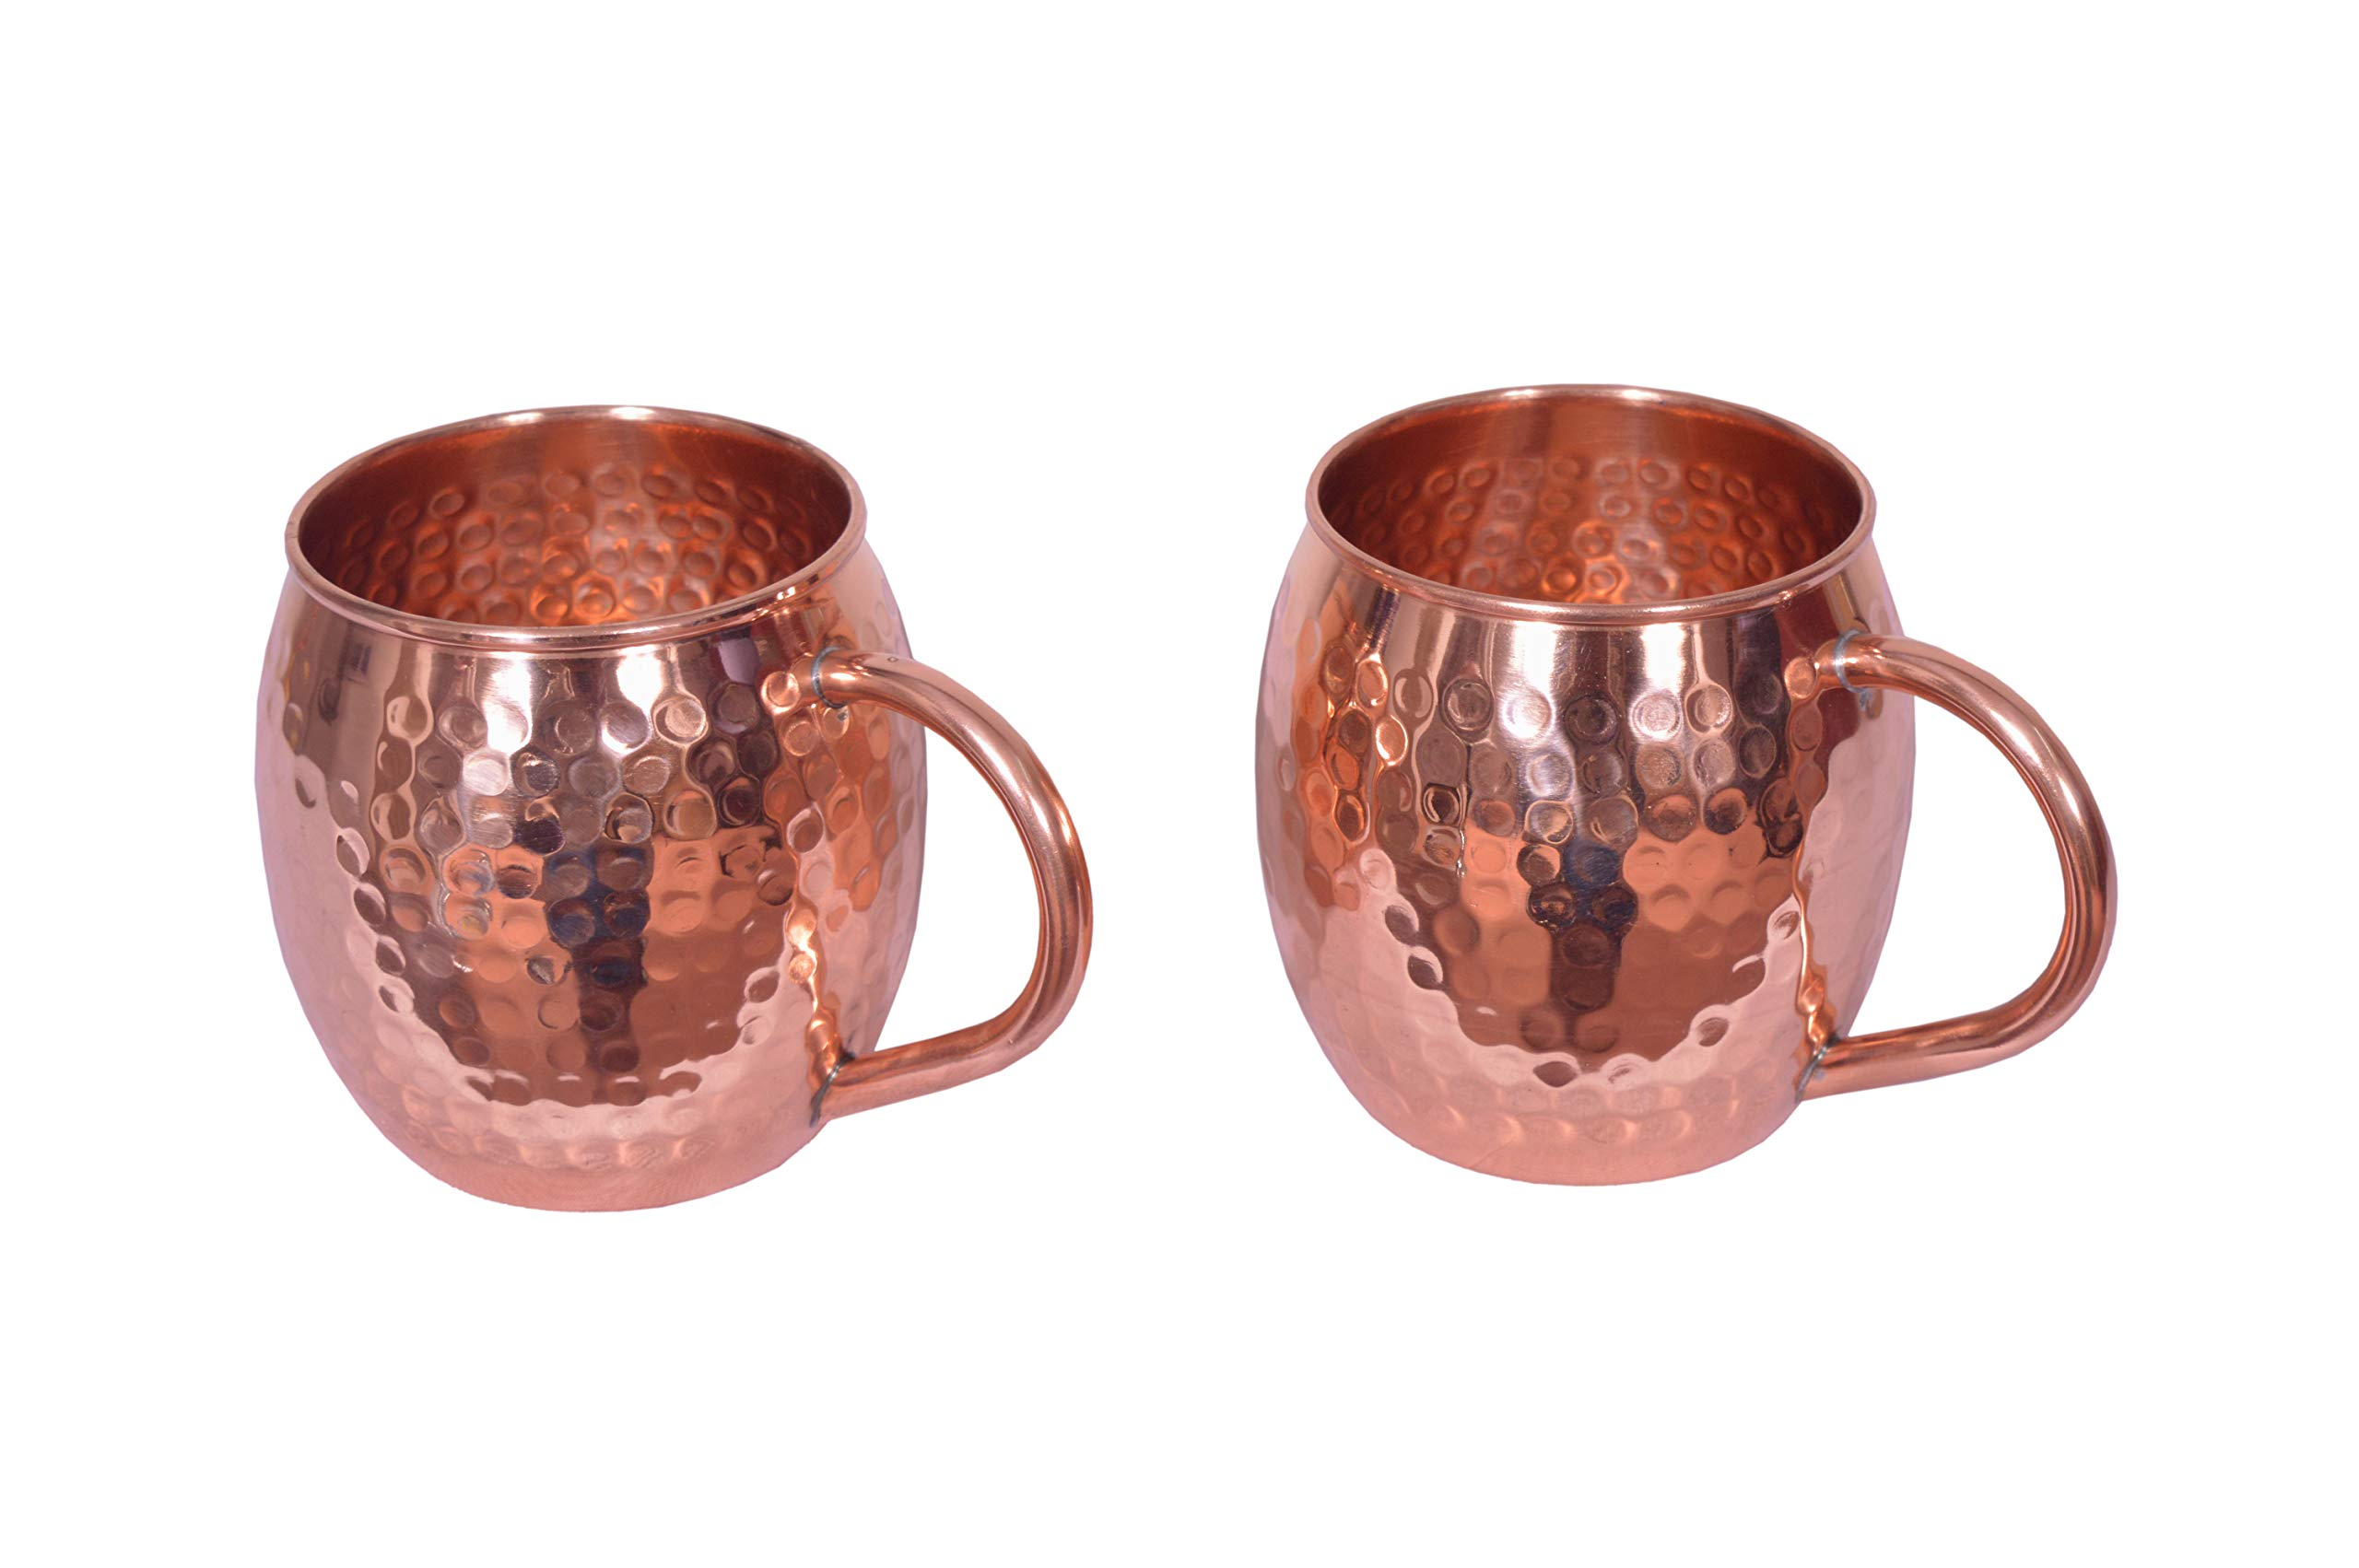 COPPER ESSENTIALS Mascow Mule 18 ounces Hammered Copper Mugs set of two made from 100% pure copper with round handle